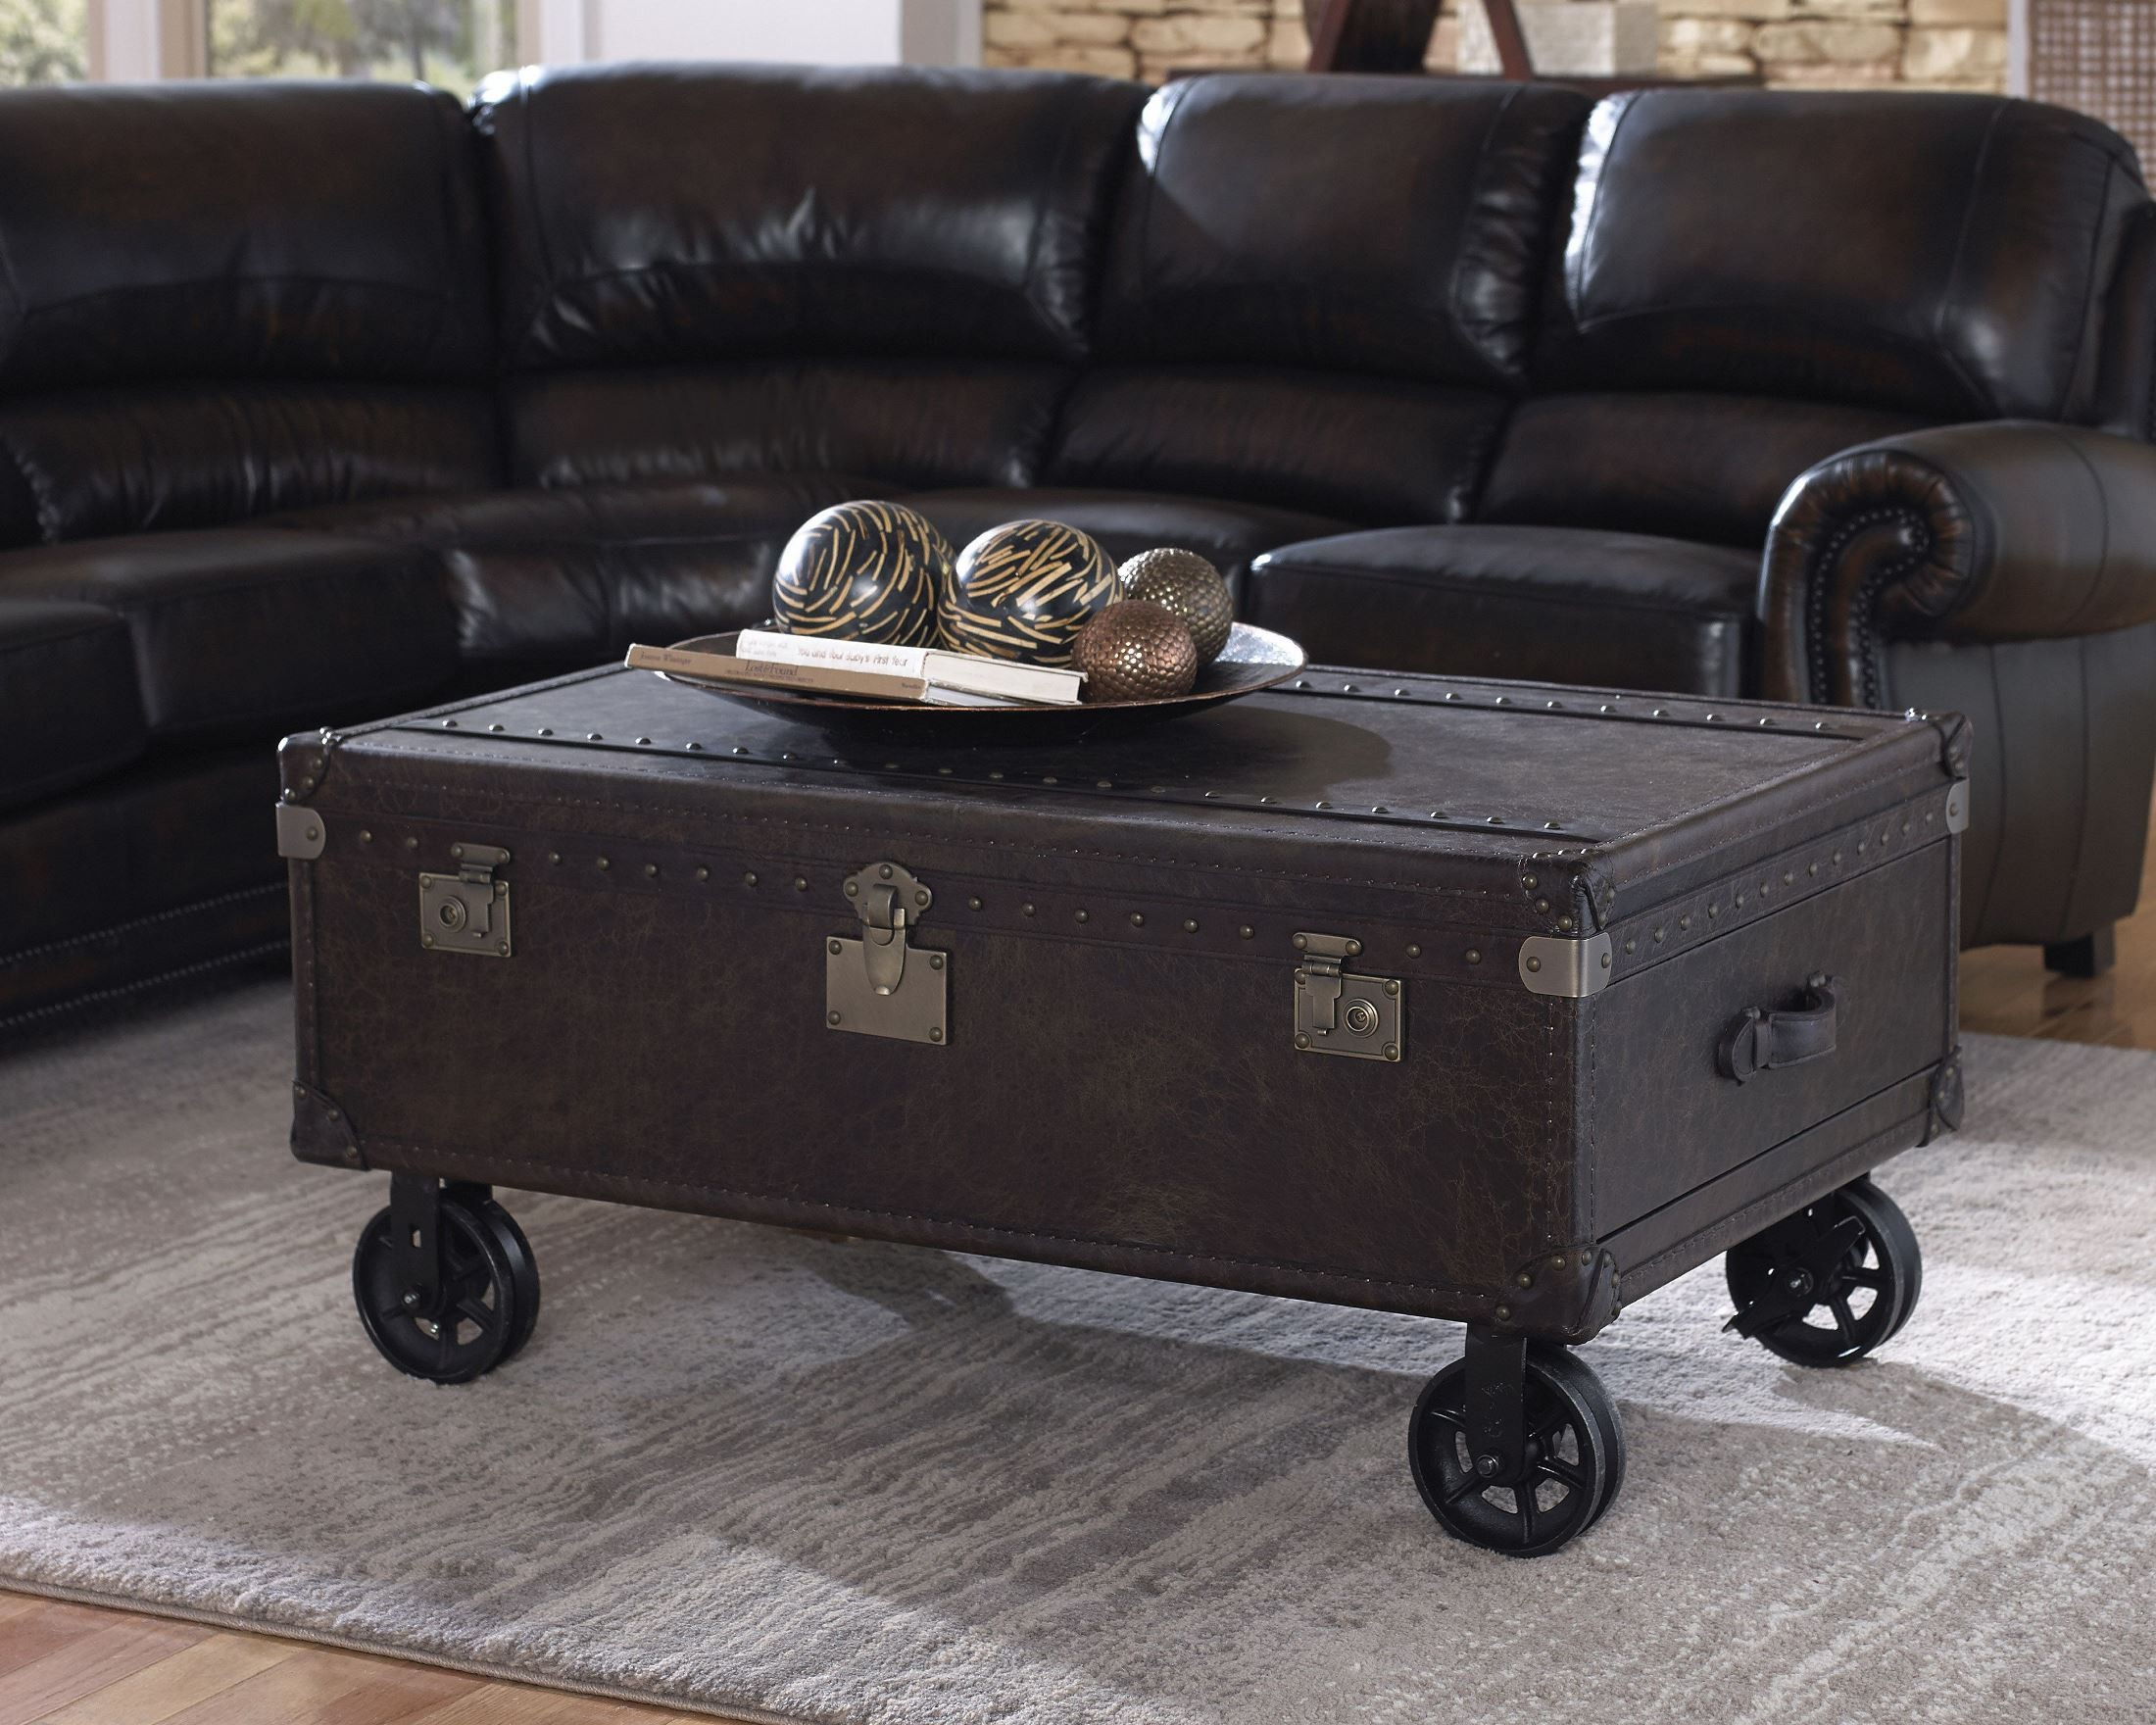 General Brompton Chocolate Leather Steamer Cocktail Table. Small Room Desk Ideas. Desk Lamps Walmart. Bunk Beds With A Desk. Kv Drawer Slides Soft Close. Pantry Drawer System. Cheap Desk Organizers. Desk Lamp With Outlet In Base. 8 Drawer Coffee Table